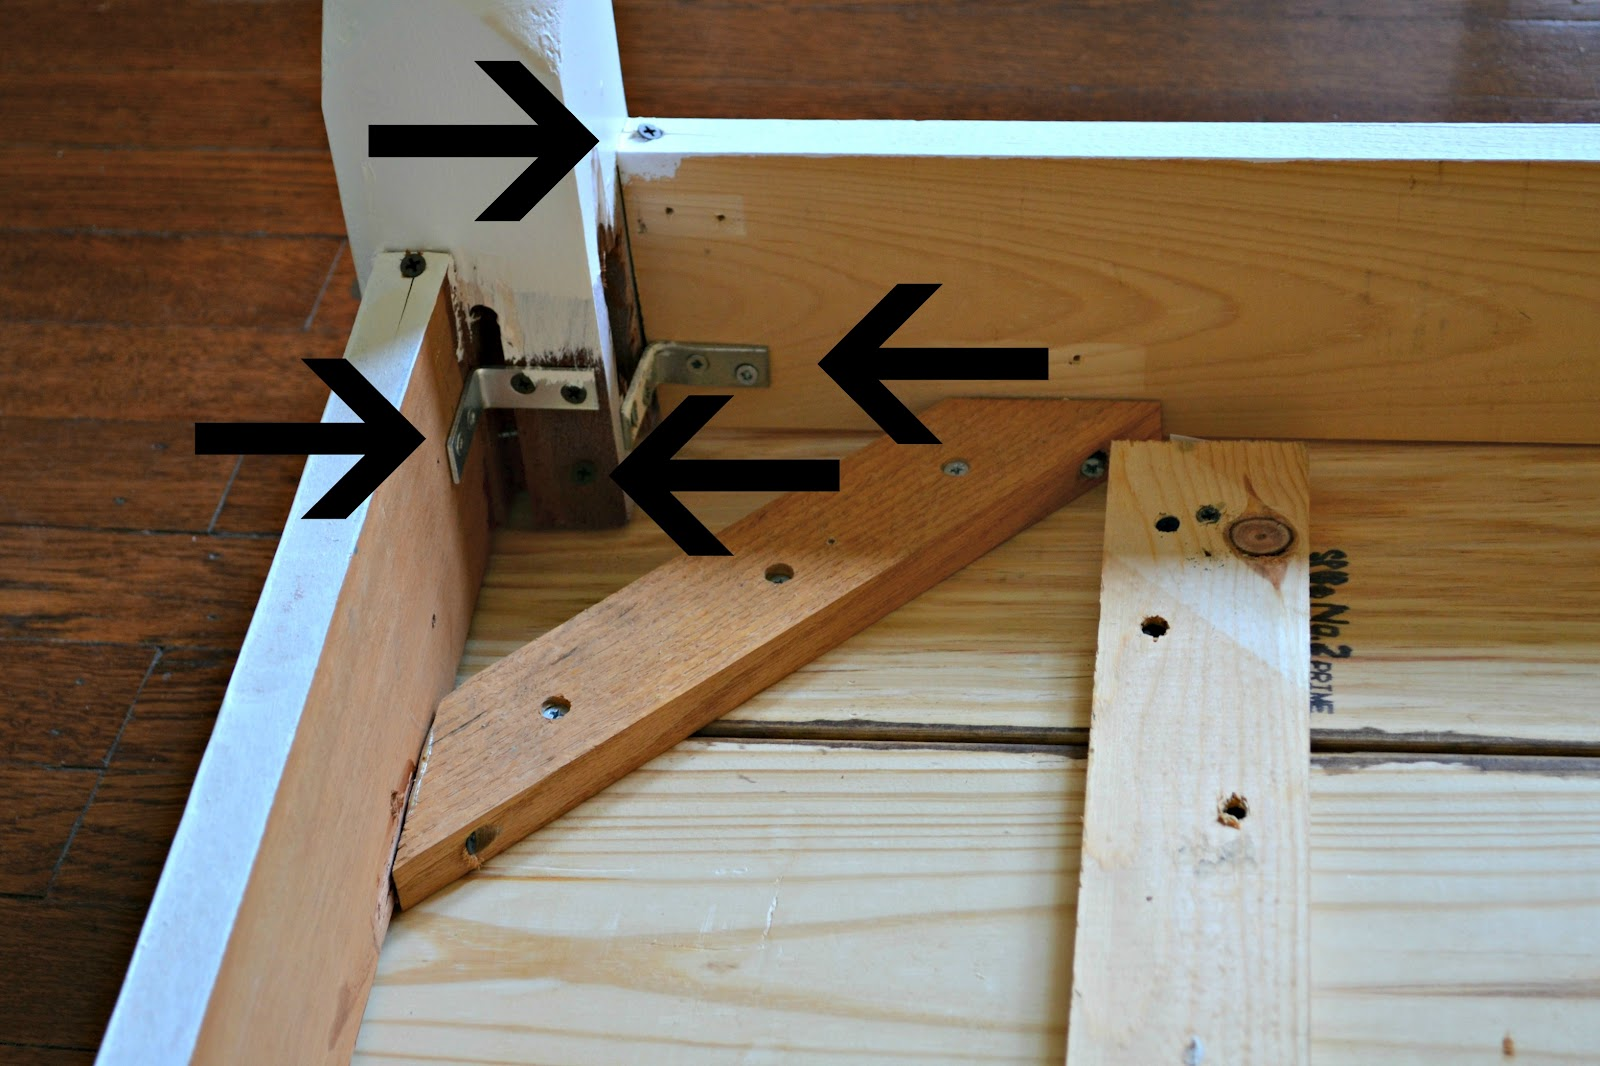 To Also Add Stability, I Drilled Holes And Inserted Screws From The Legs,  At An Angle Into The Table Top, Shown With The Bottom Arrow In The Photo  Below.